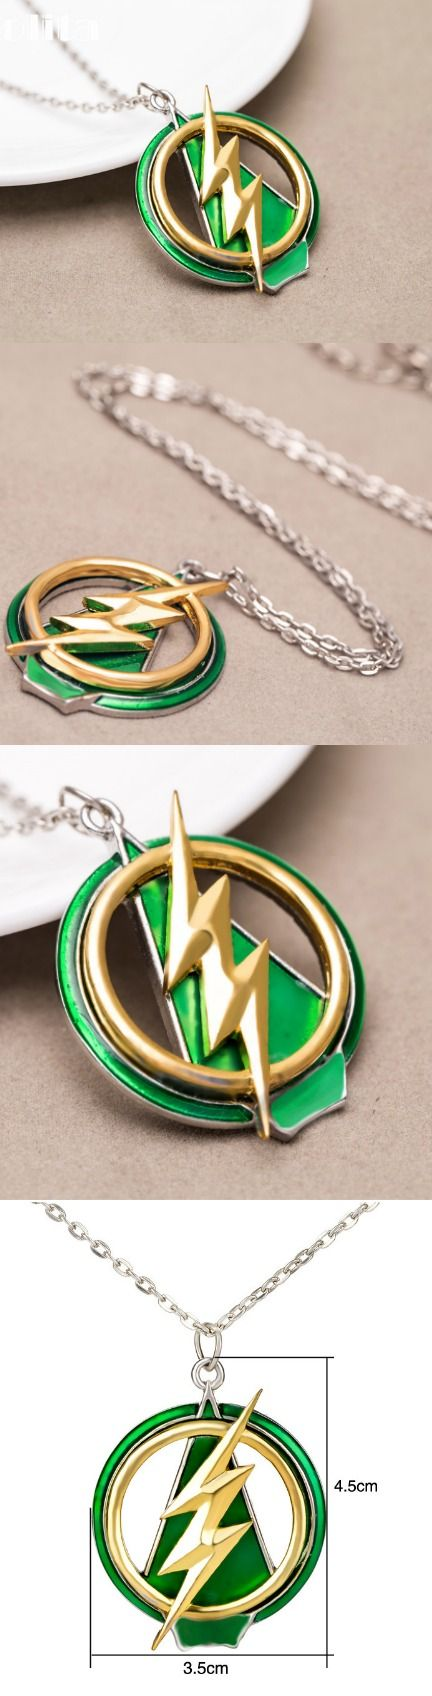 The Flash And Arrow Pendant Necklace! Click The Image To Buy It Now or Tag Someone You Want To Buy This For. #TheFlash